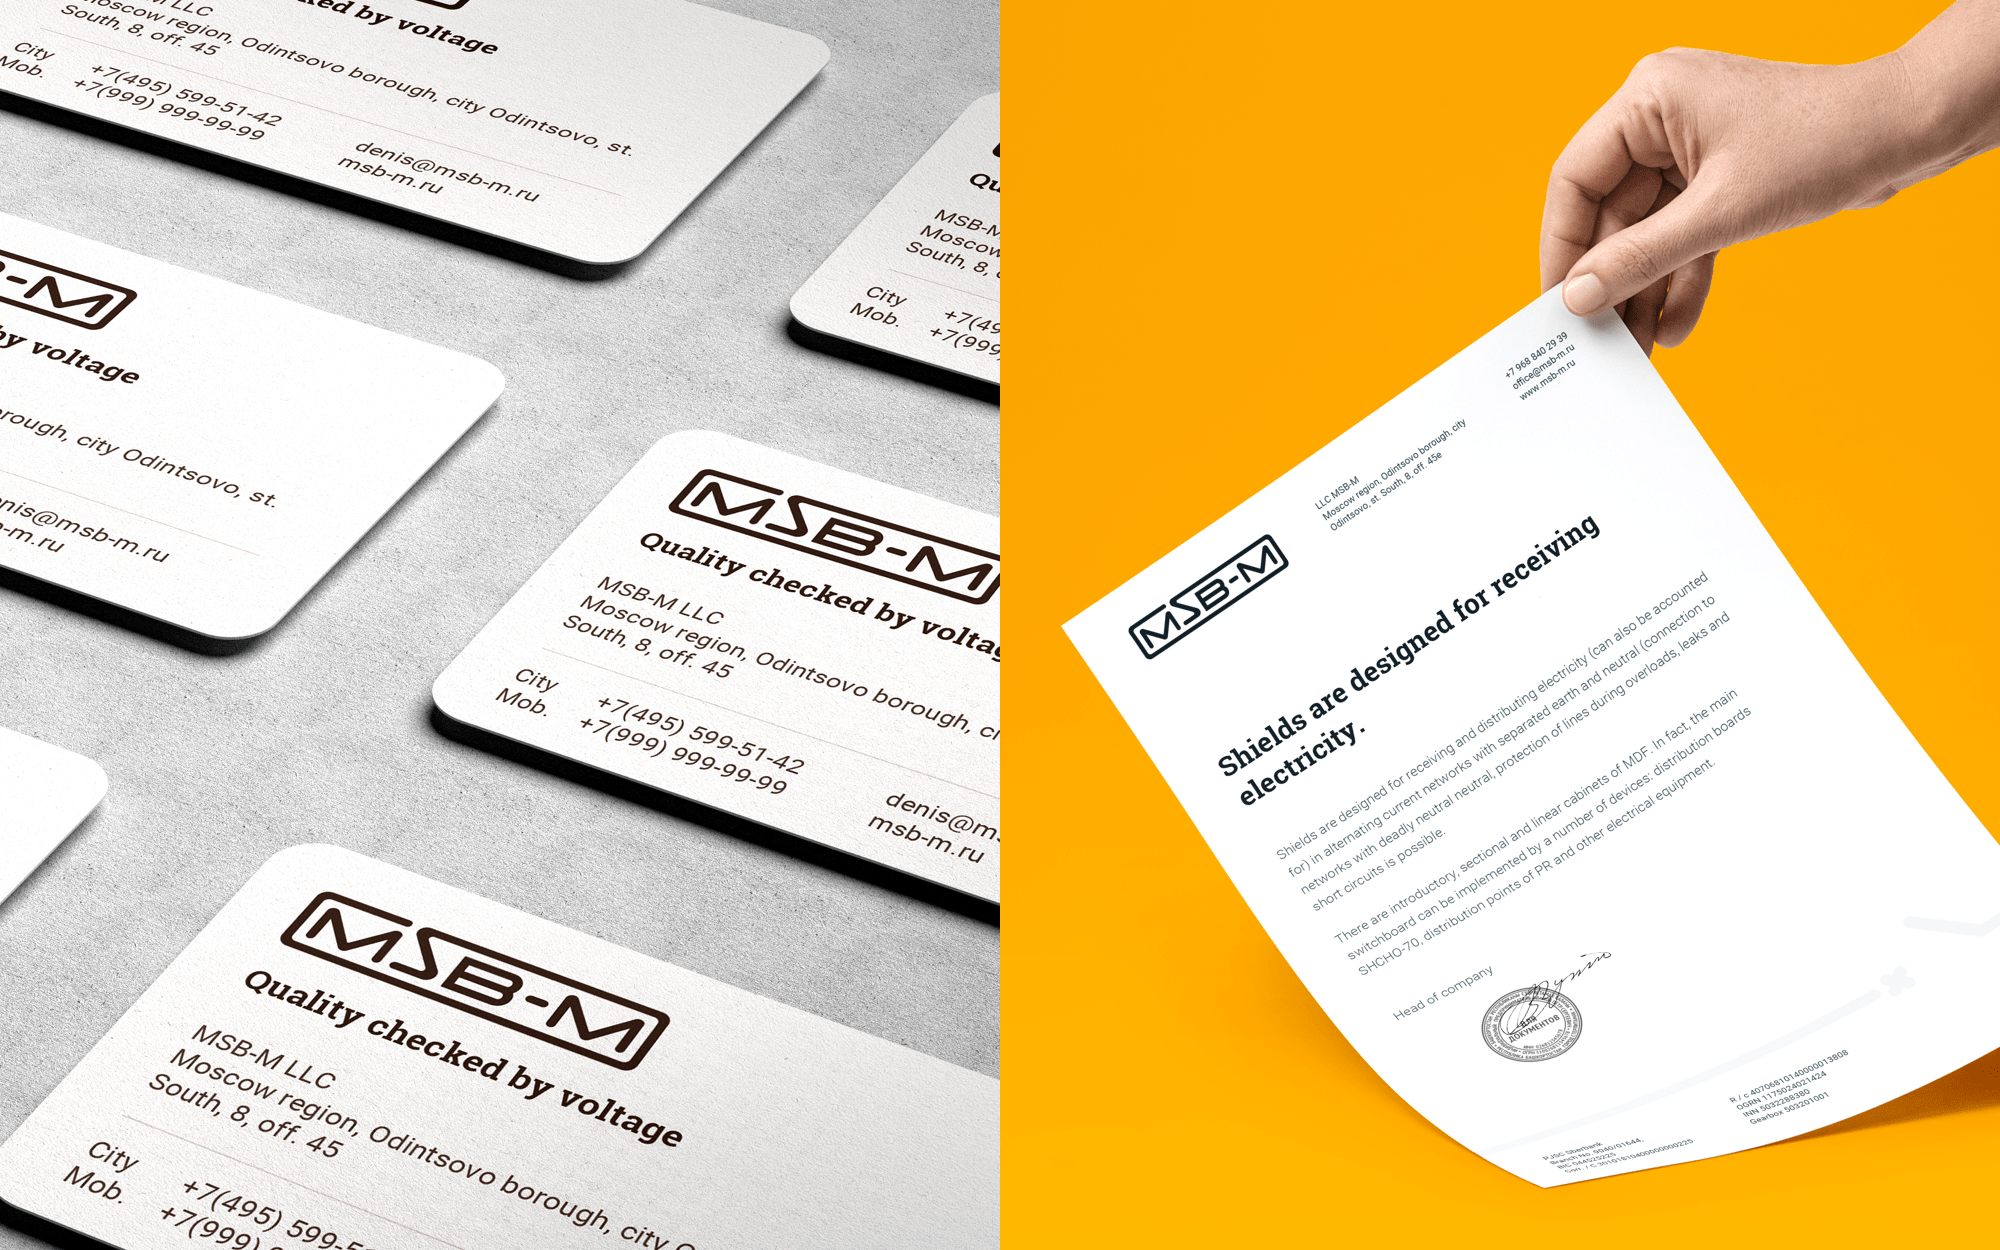 Corporate identity design of industrial company